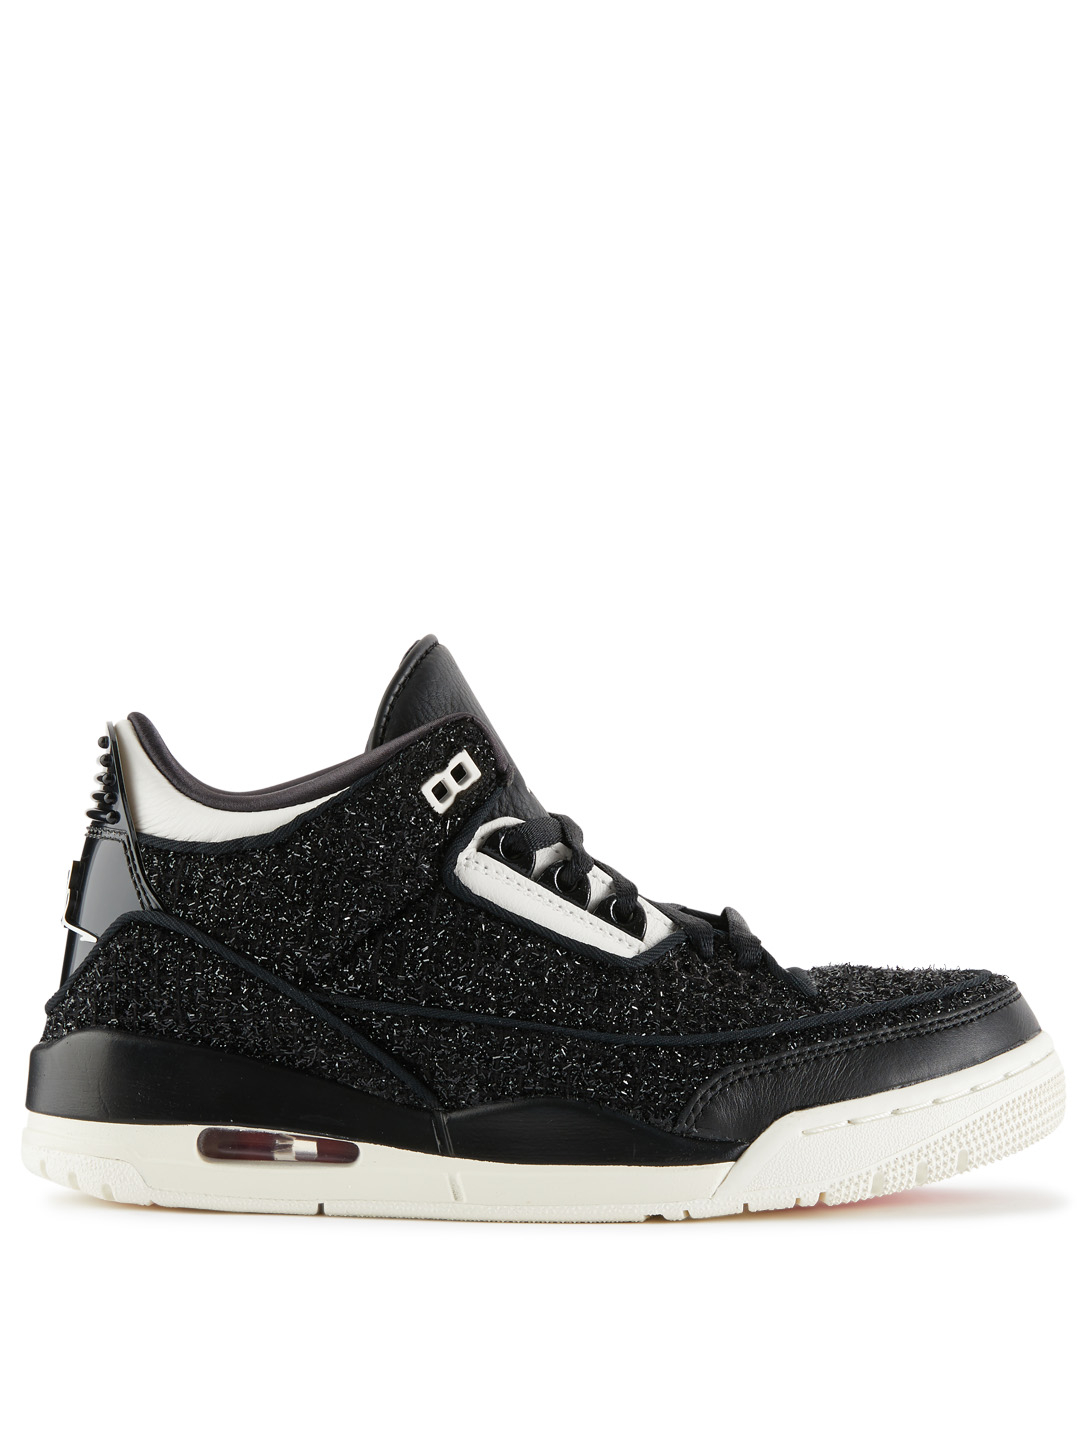 59bc710161f NIKE Vogue x Air Jordan 3 AWOK Sneakers Women's Black ...